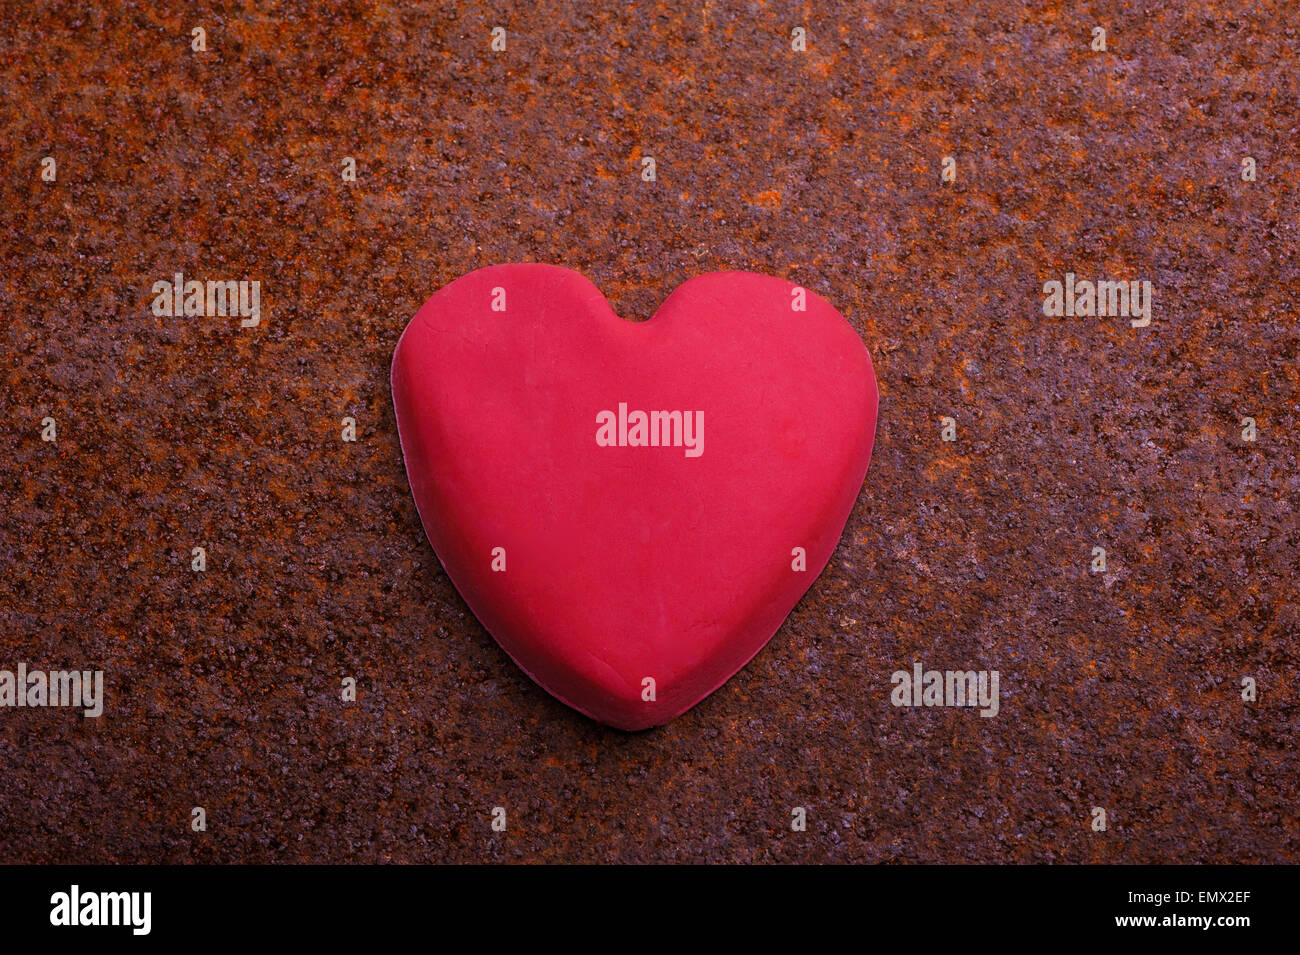 Imperfect, handmade fondant icing heart.on a corroded, rusty background. - Stock Image